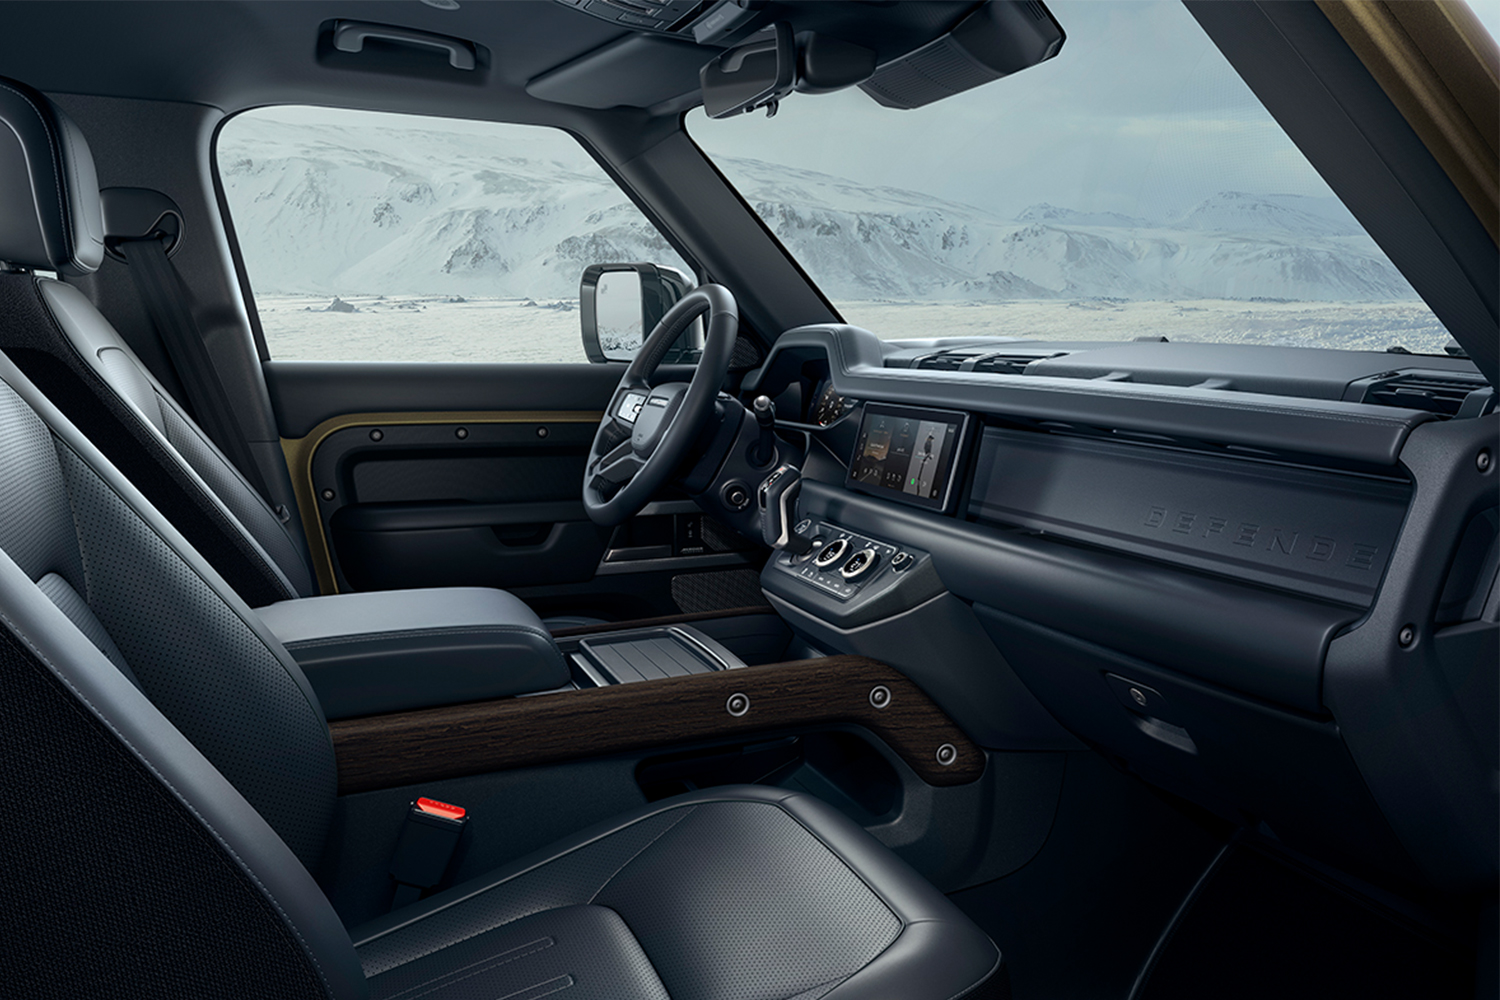 The interior of the 2021 Land Rover Defender, featuring a number of luxurious amenities and some we didn't like as much after test driving the model.